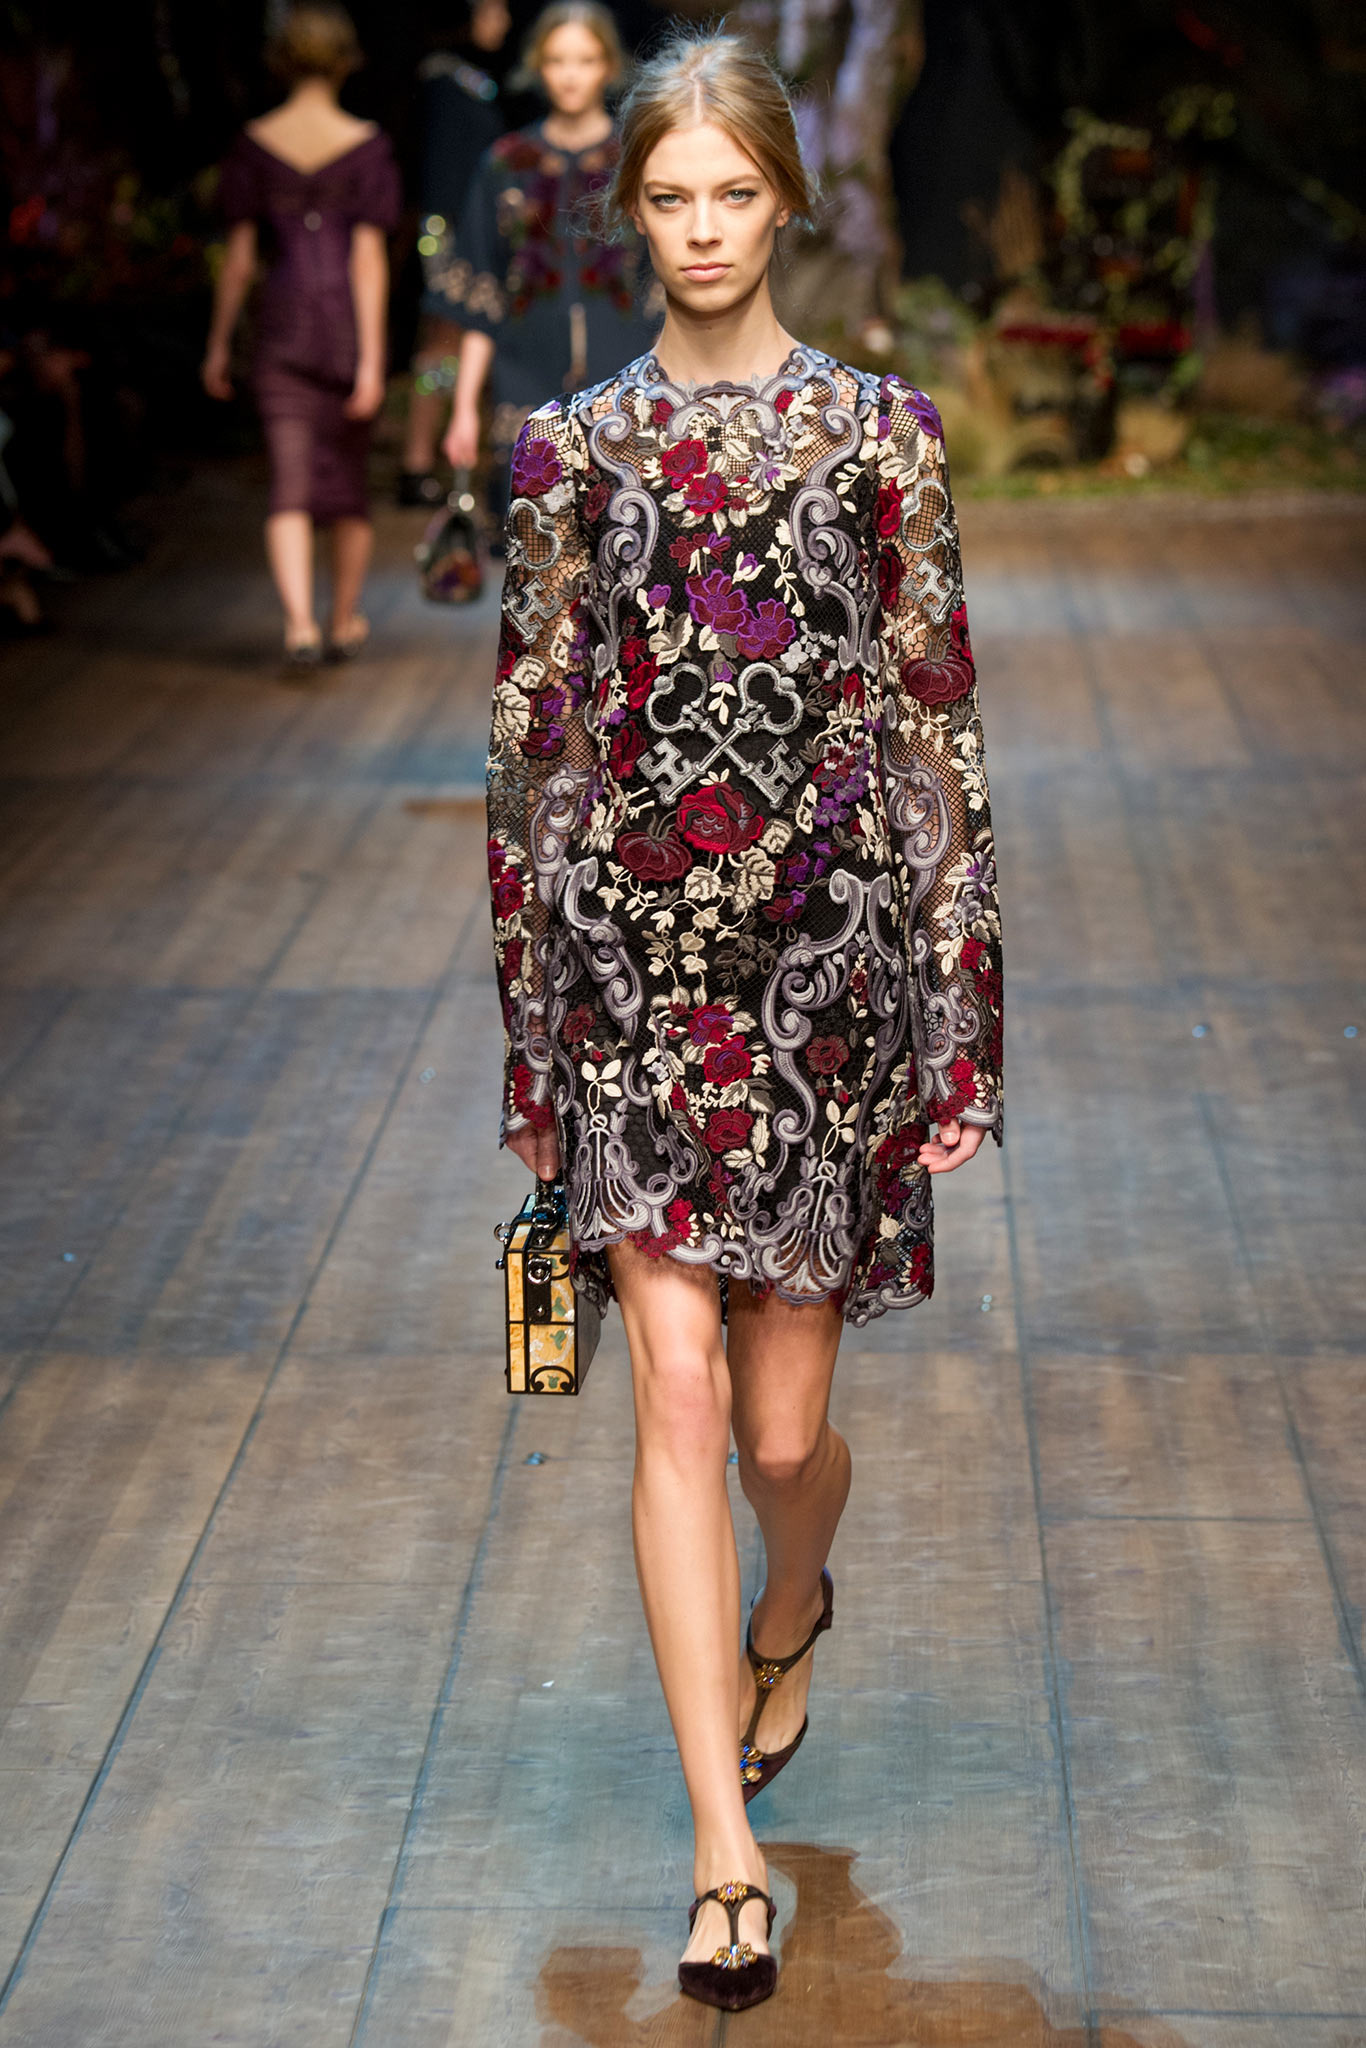 Dolce-Gabbana-Ready-to-Wear-Autumn-Winter-2014-2015-